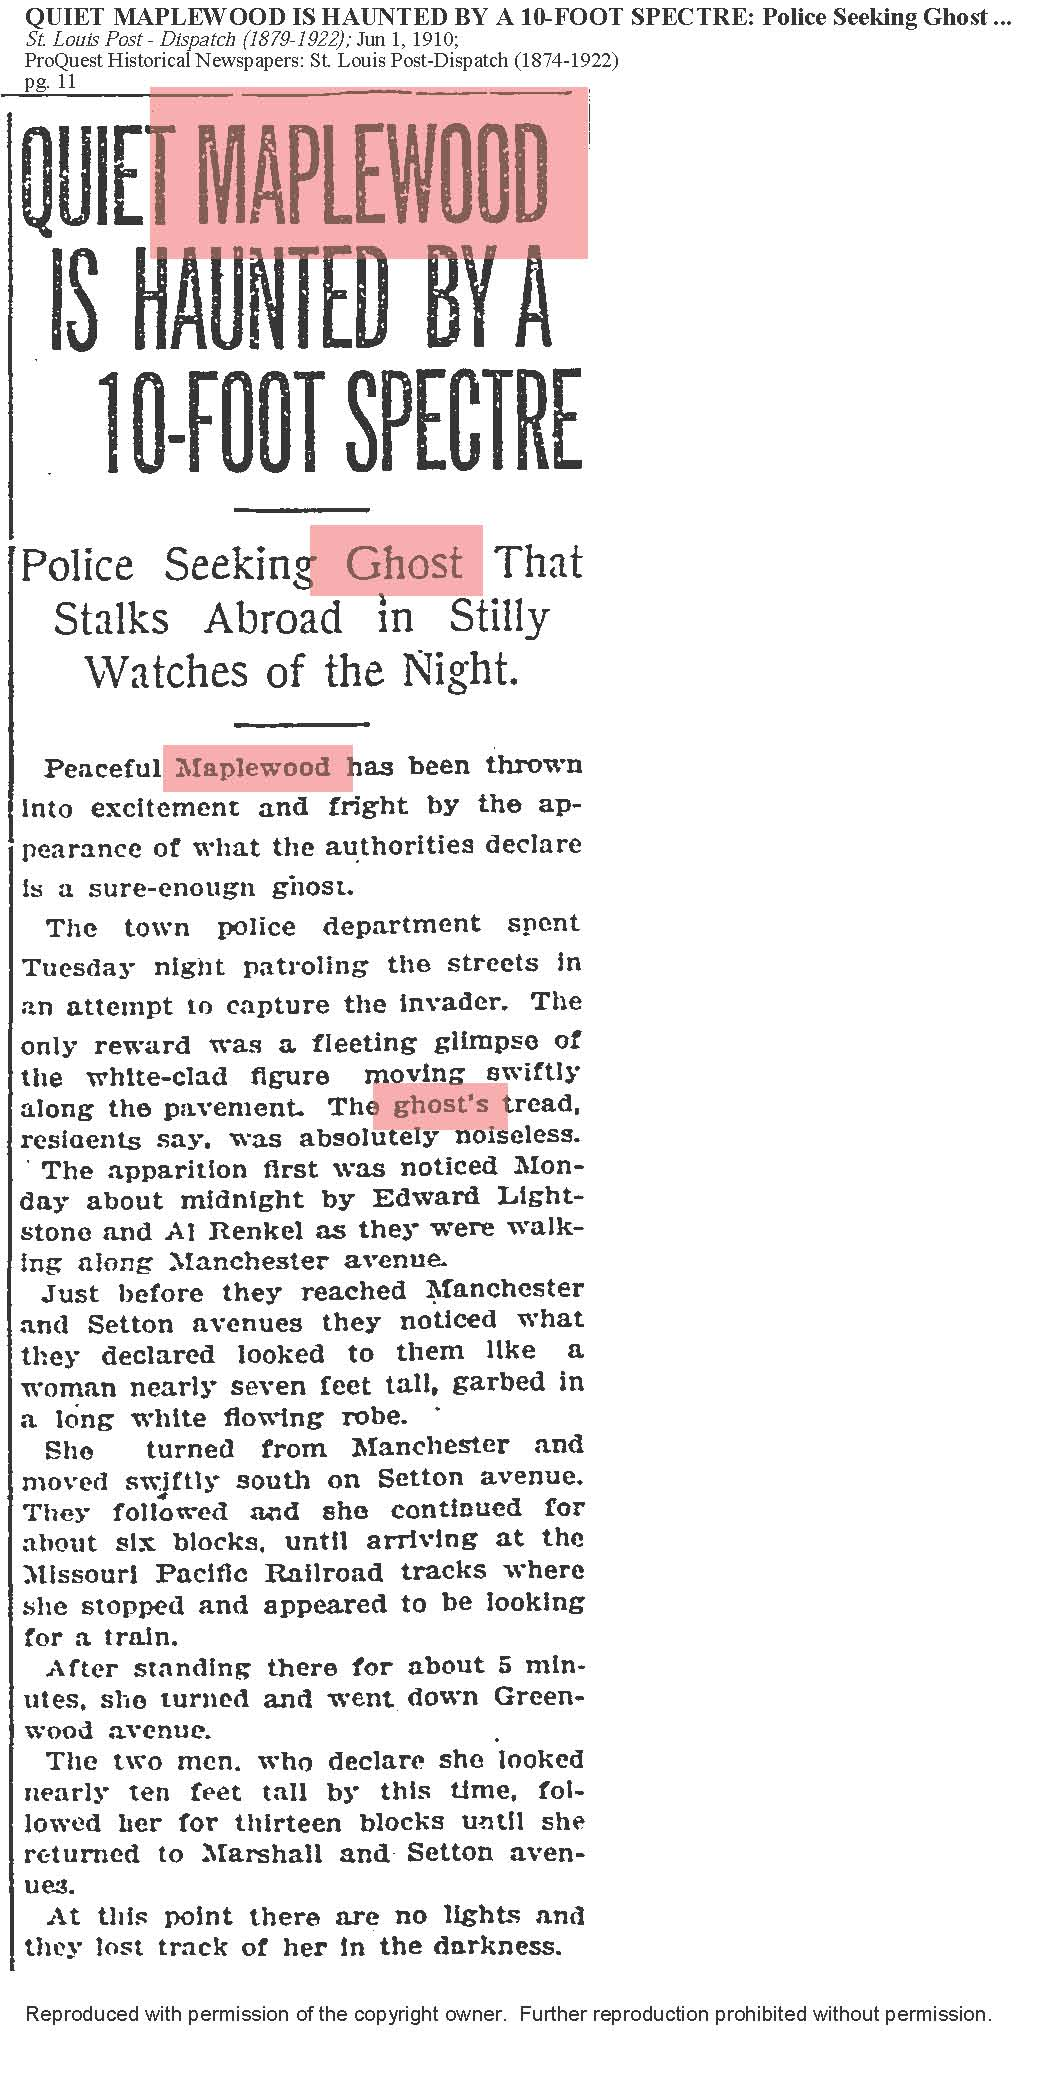 this is the original article from the St. Louis Post-Dispatch dated June 1, 1910. i think I may have posted this before but I'm posting it again so you don't have to look for it. this is just the greatest ghost story. We're very lucky to have these eyewitness accounts.